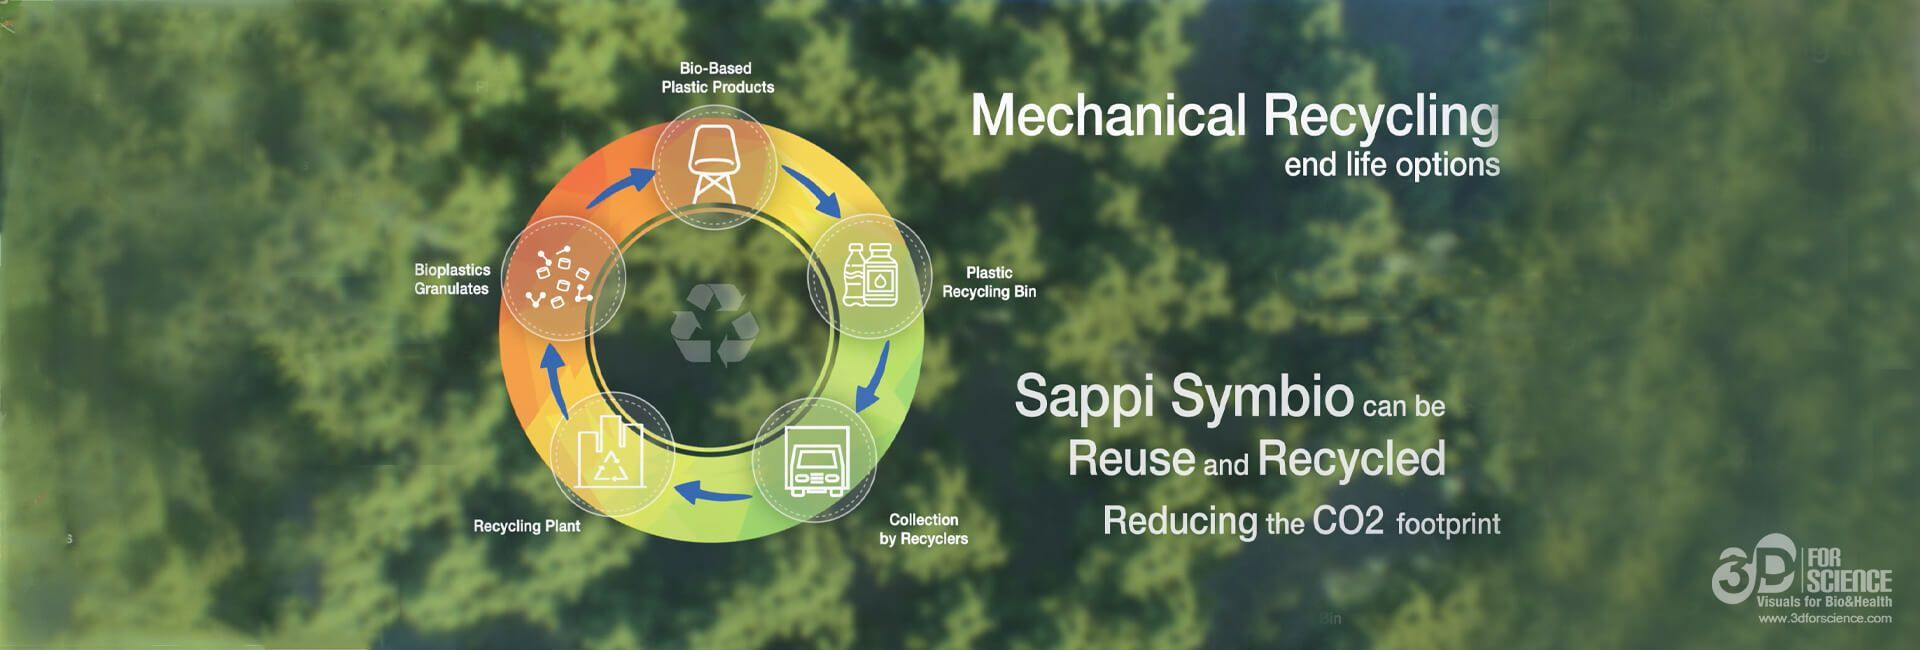 graphic of mechanical recycling of Sappi Symbio